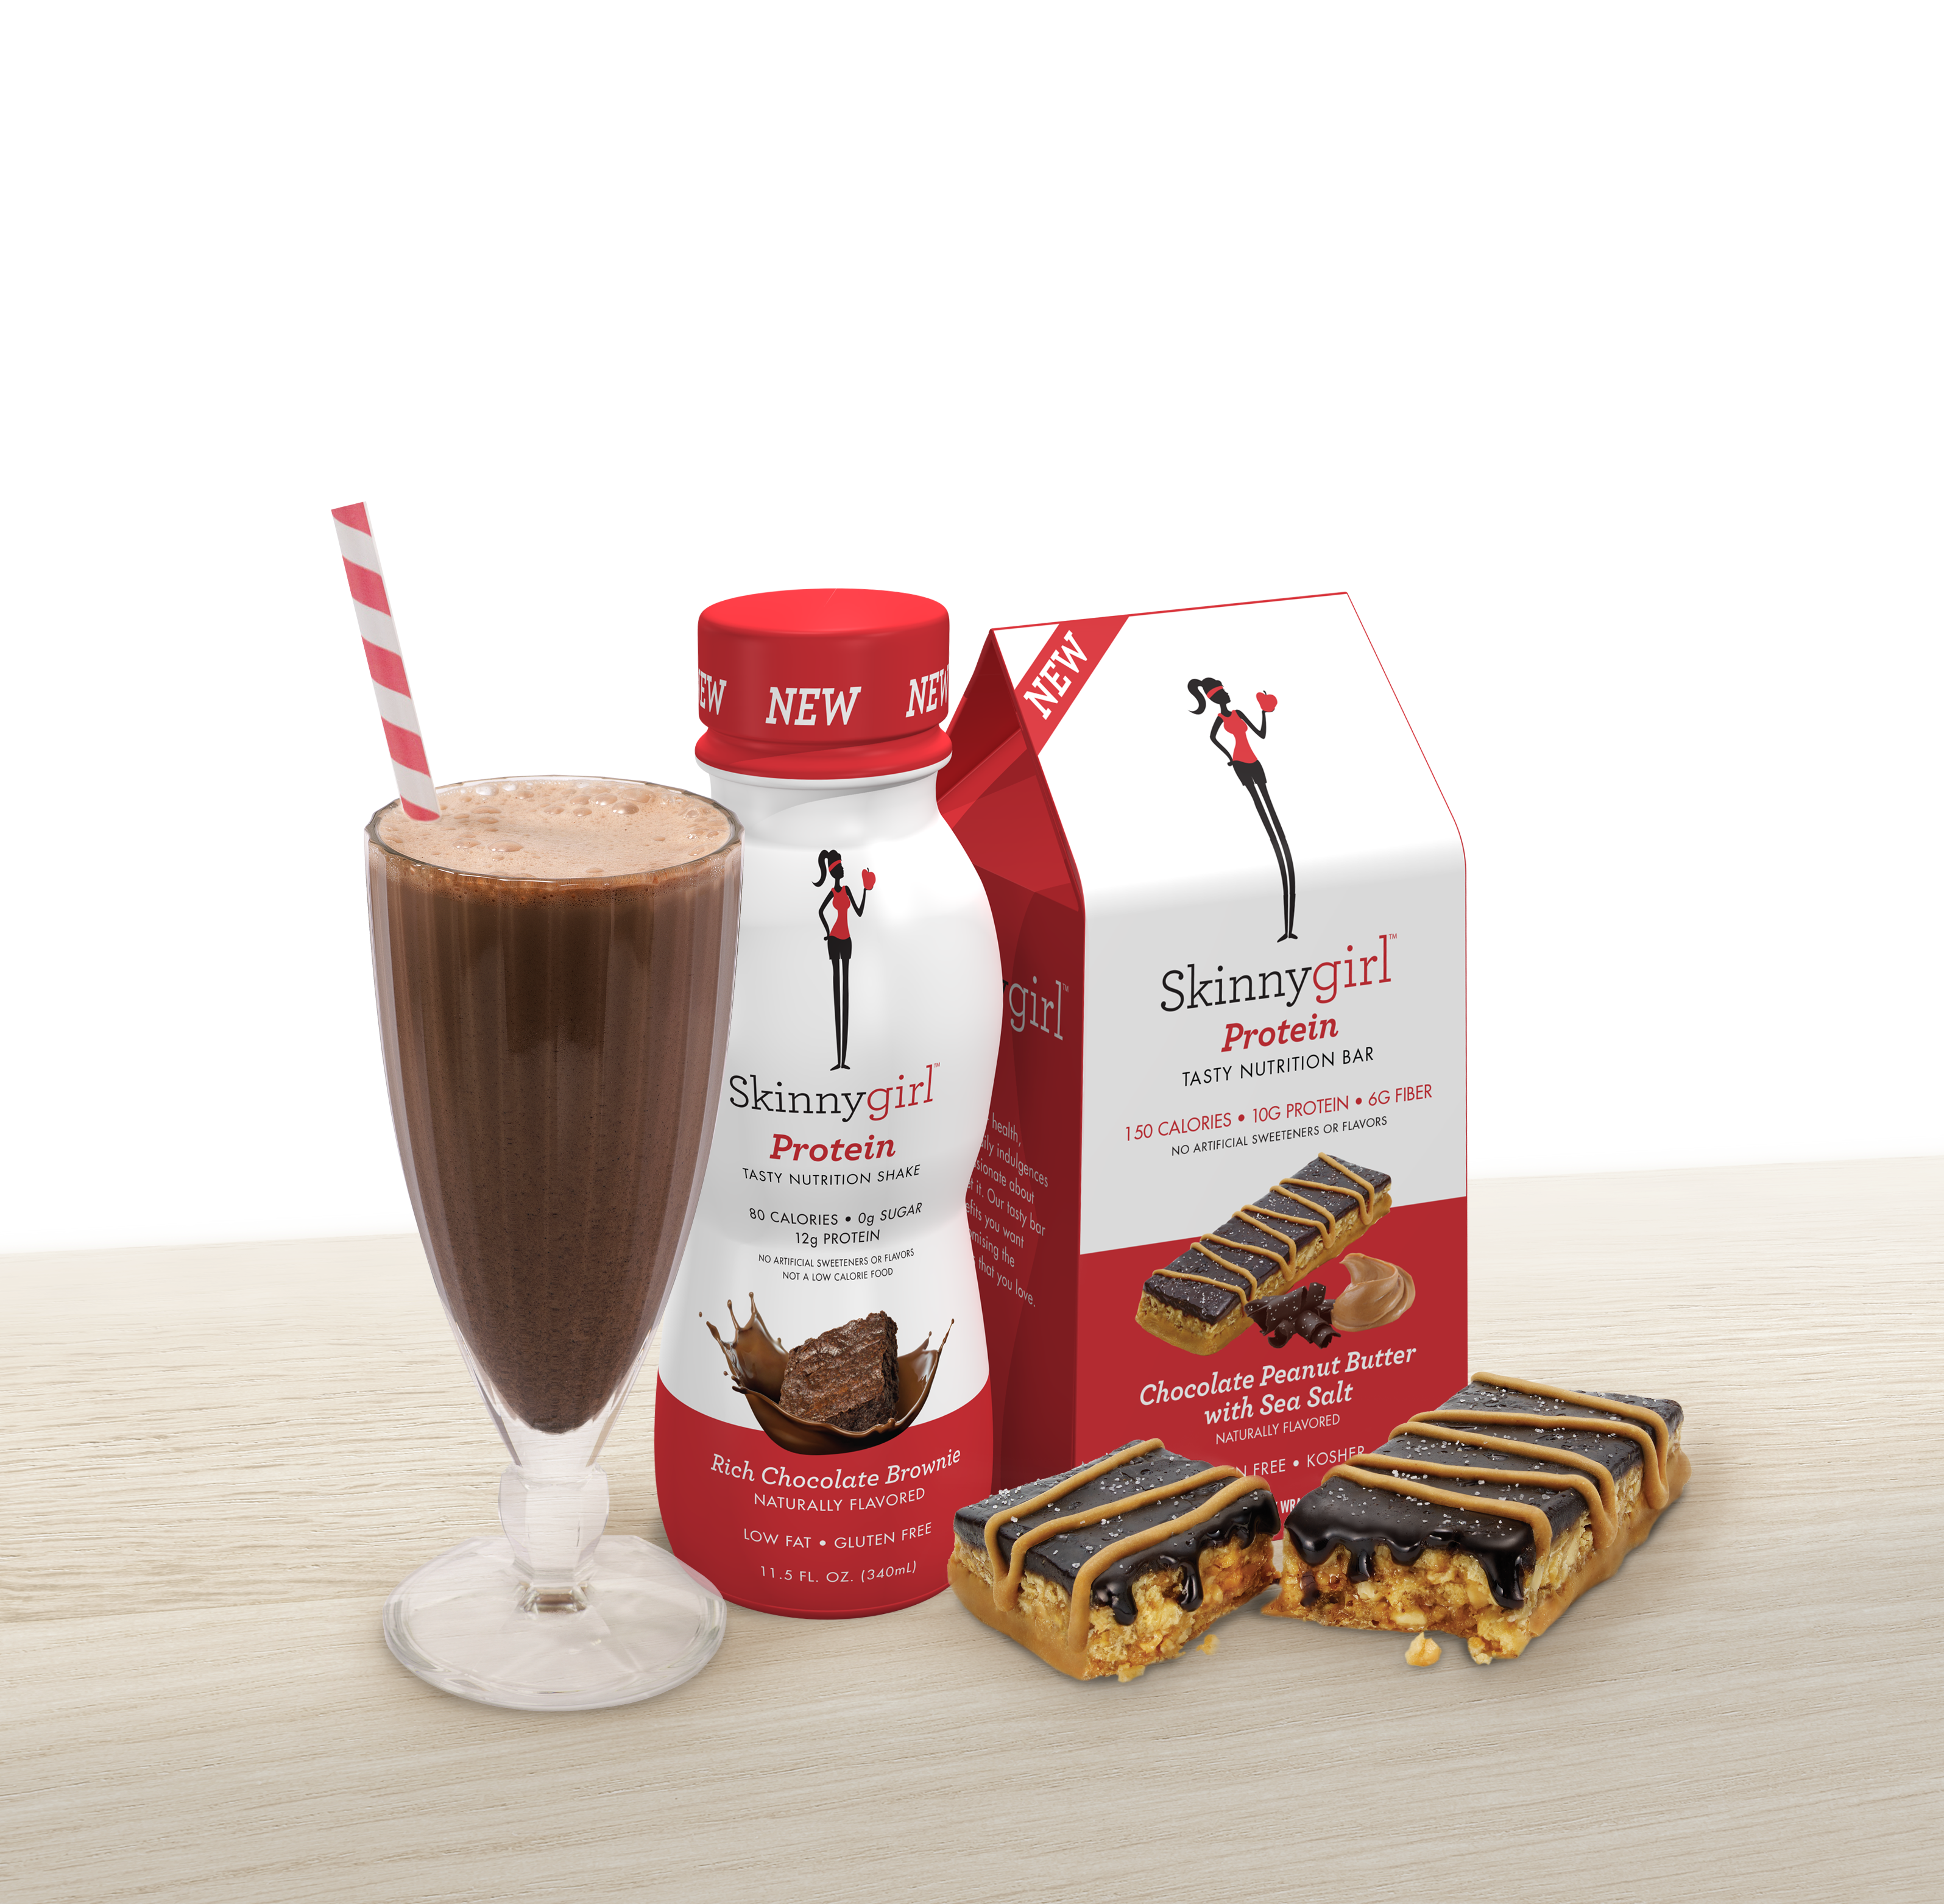 skinnygirl-protein-bars-and-shakes-lifestyle-1-1